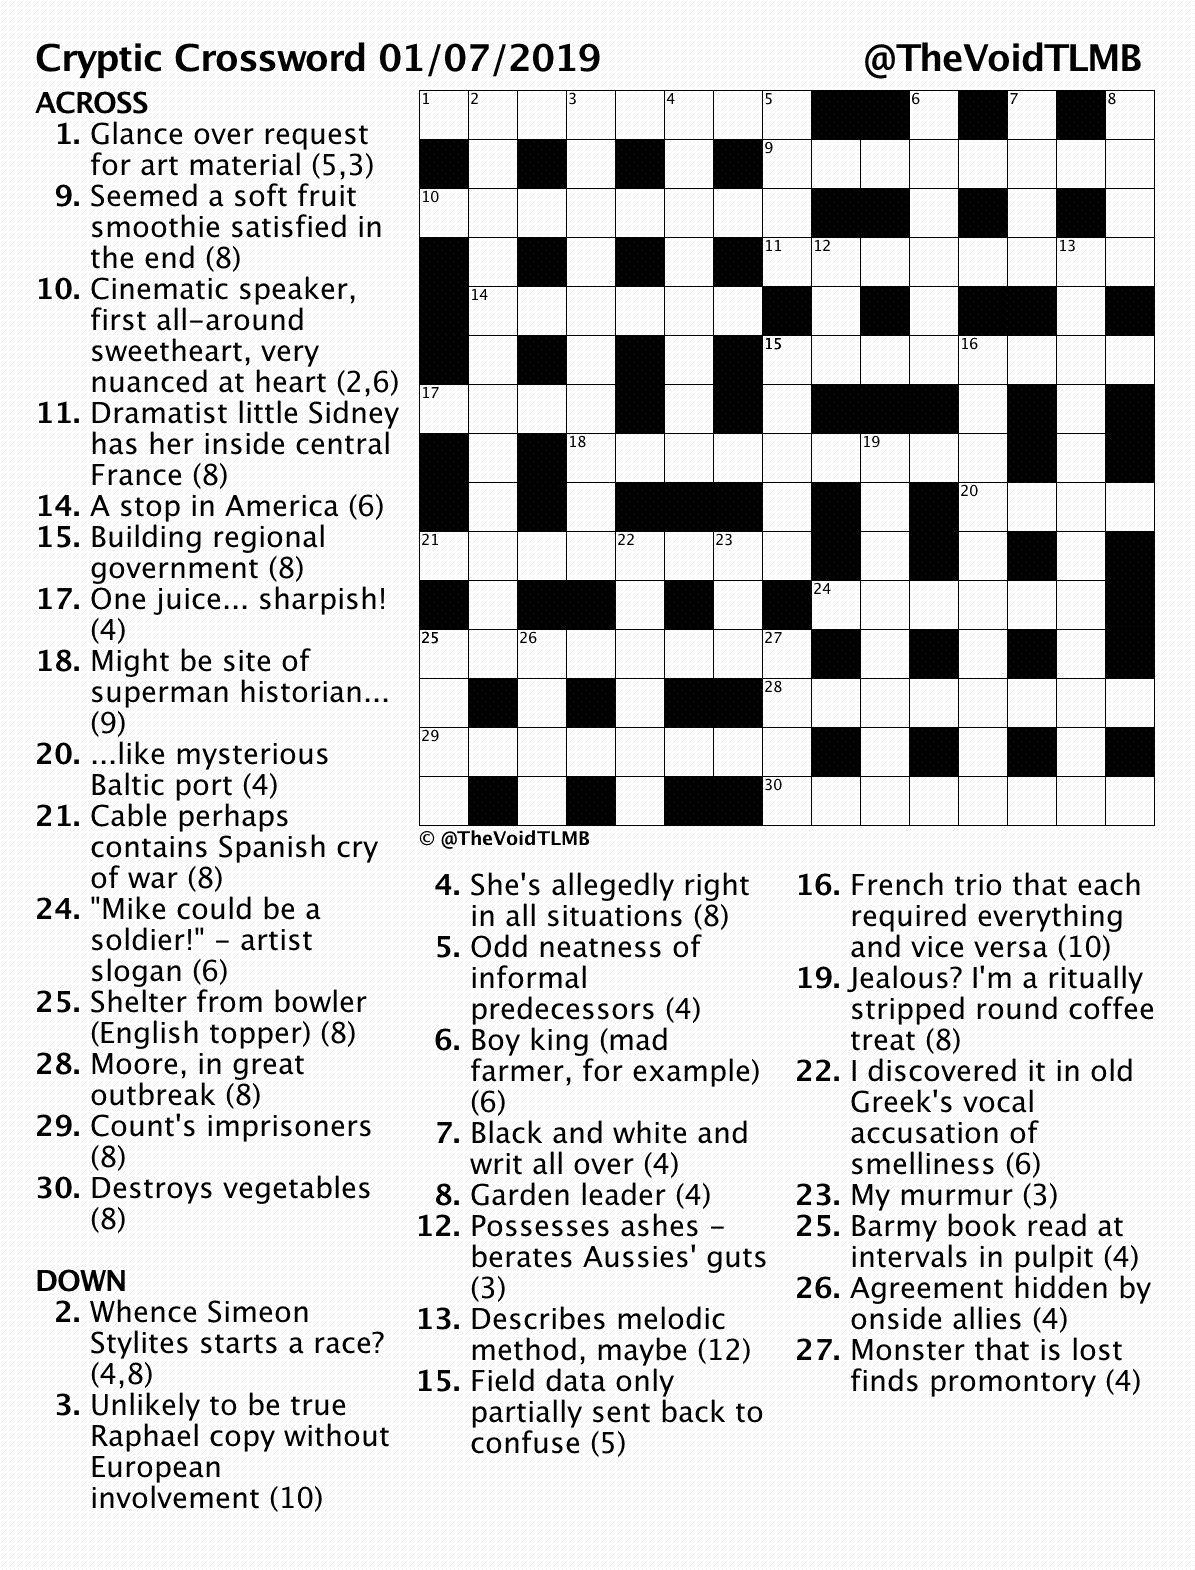 image about Printable Cryptic Crosswords called crosswords TLMB